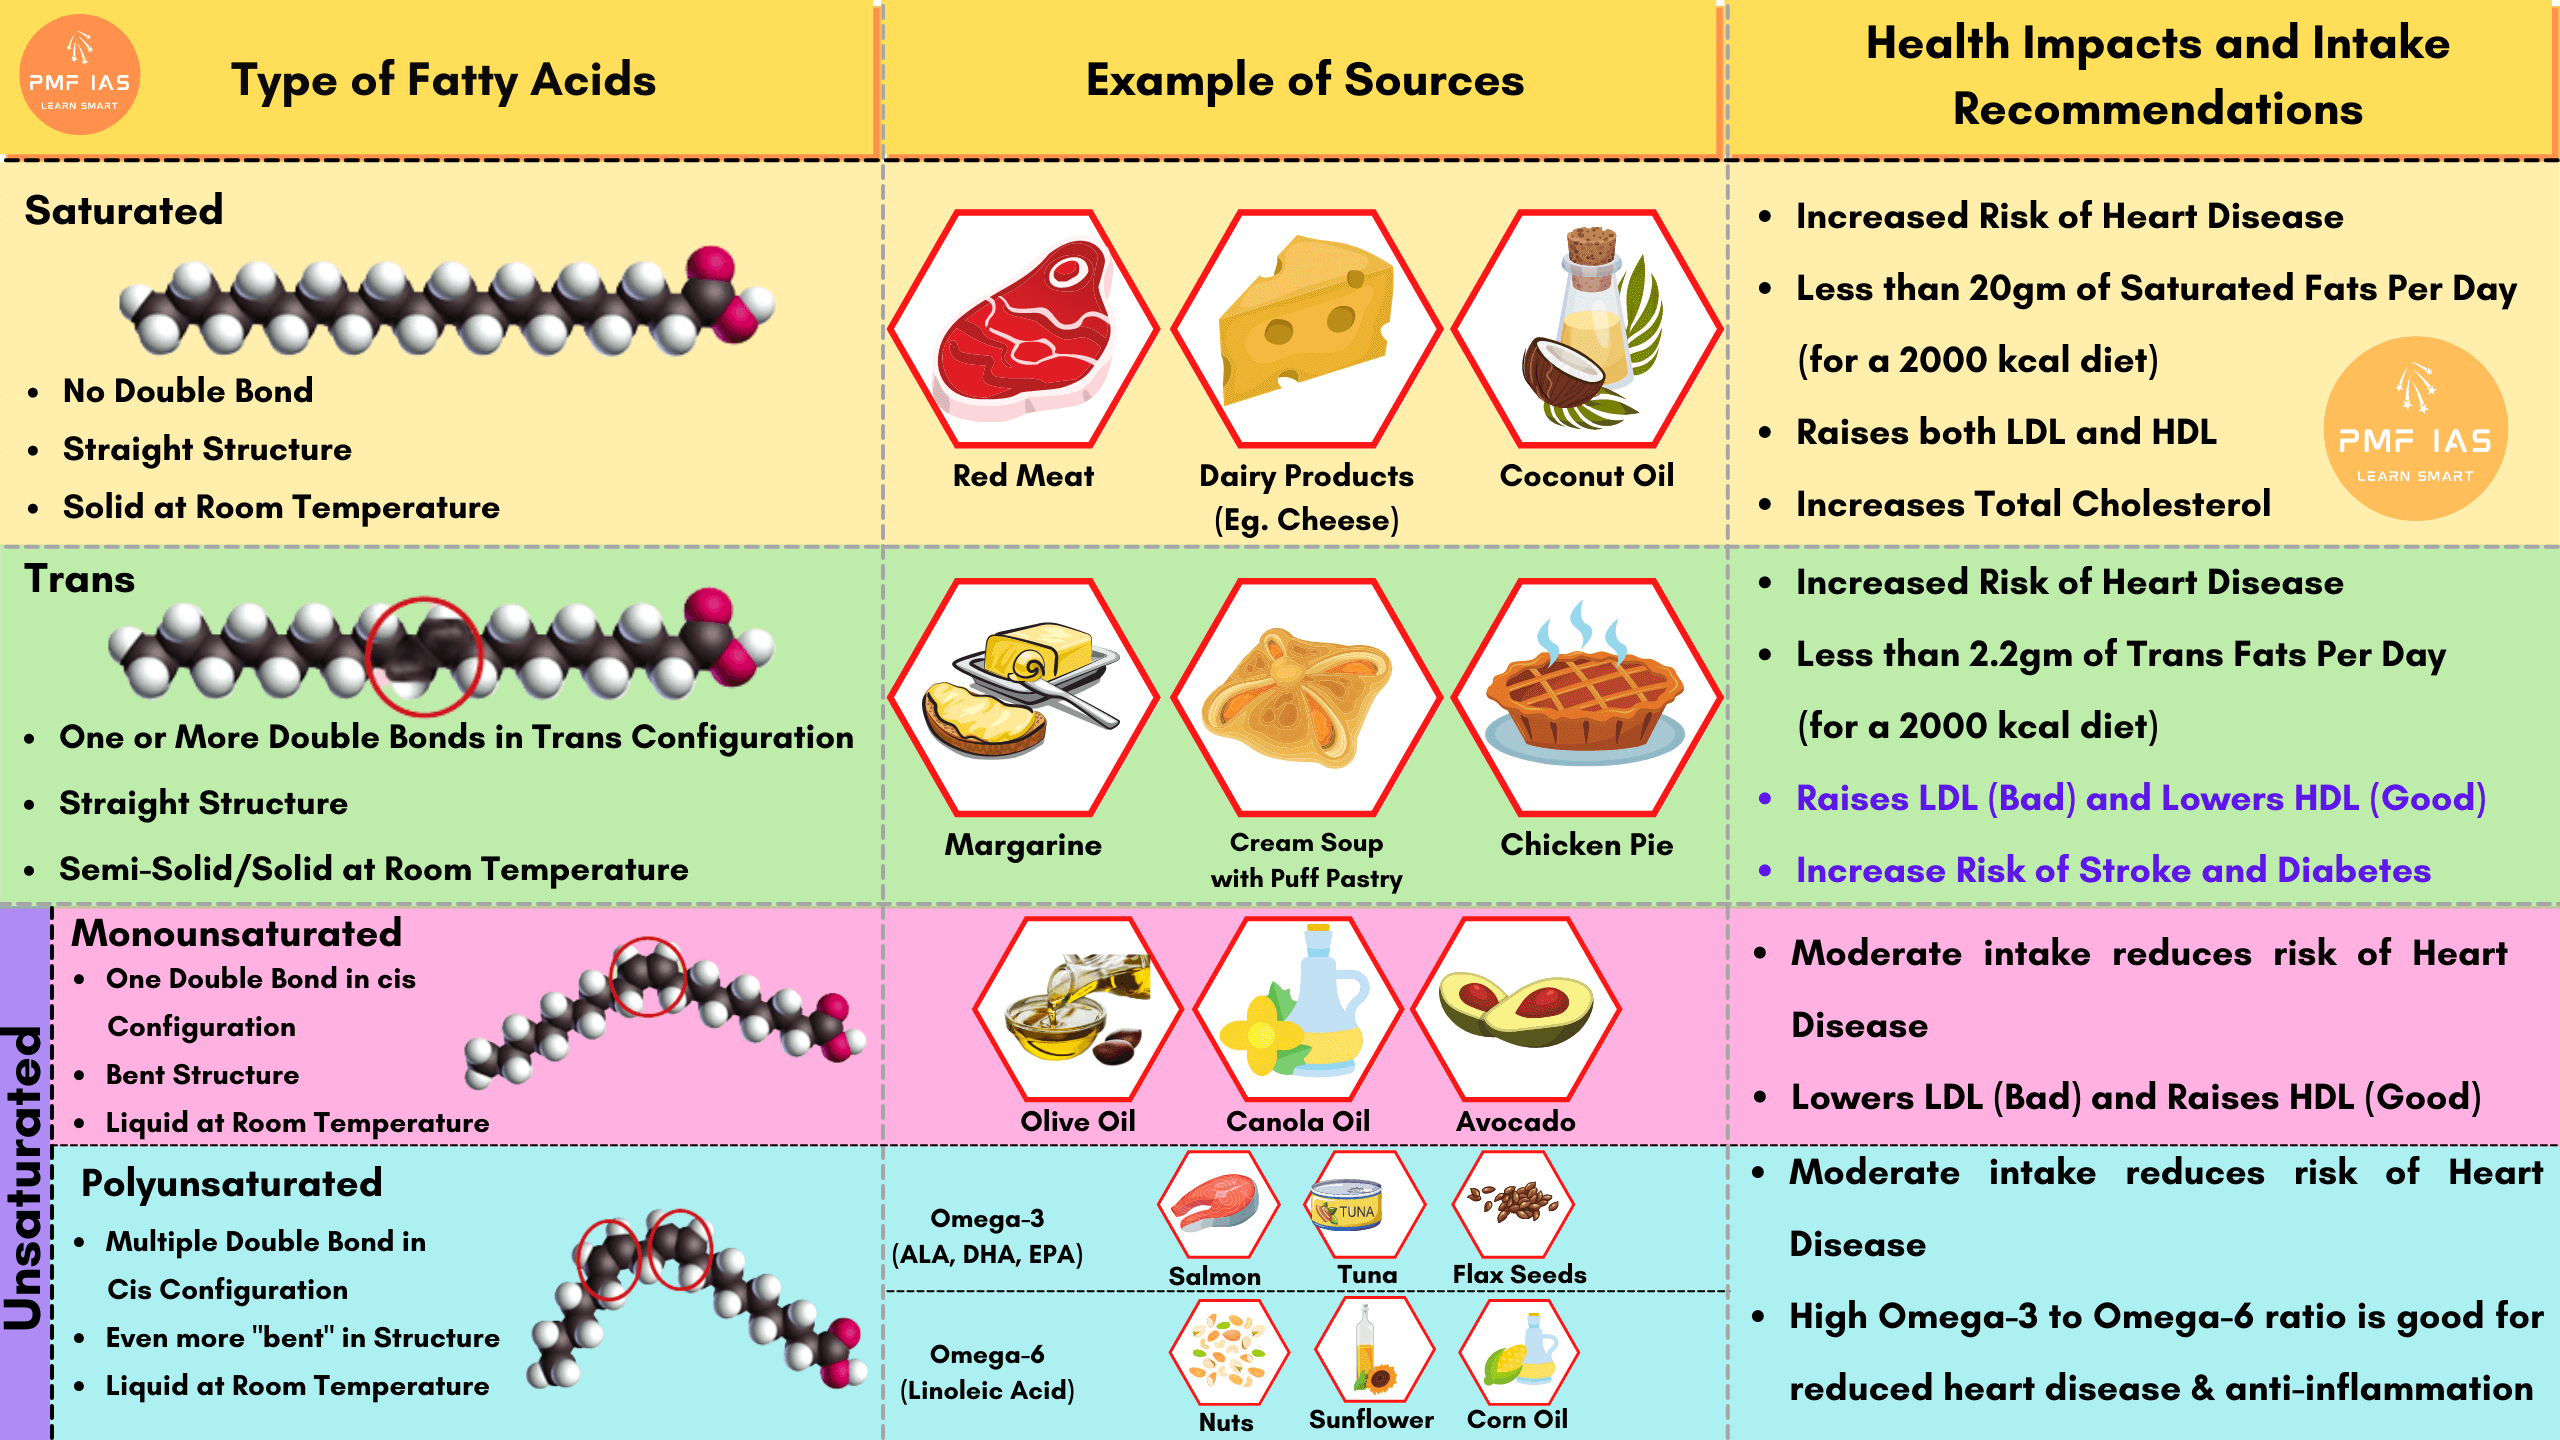 Type of Fats - Saturated Unsaturated Trans Fat